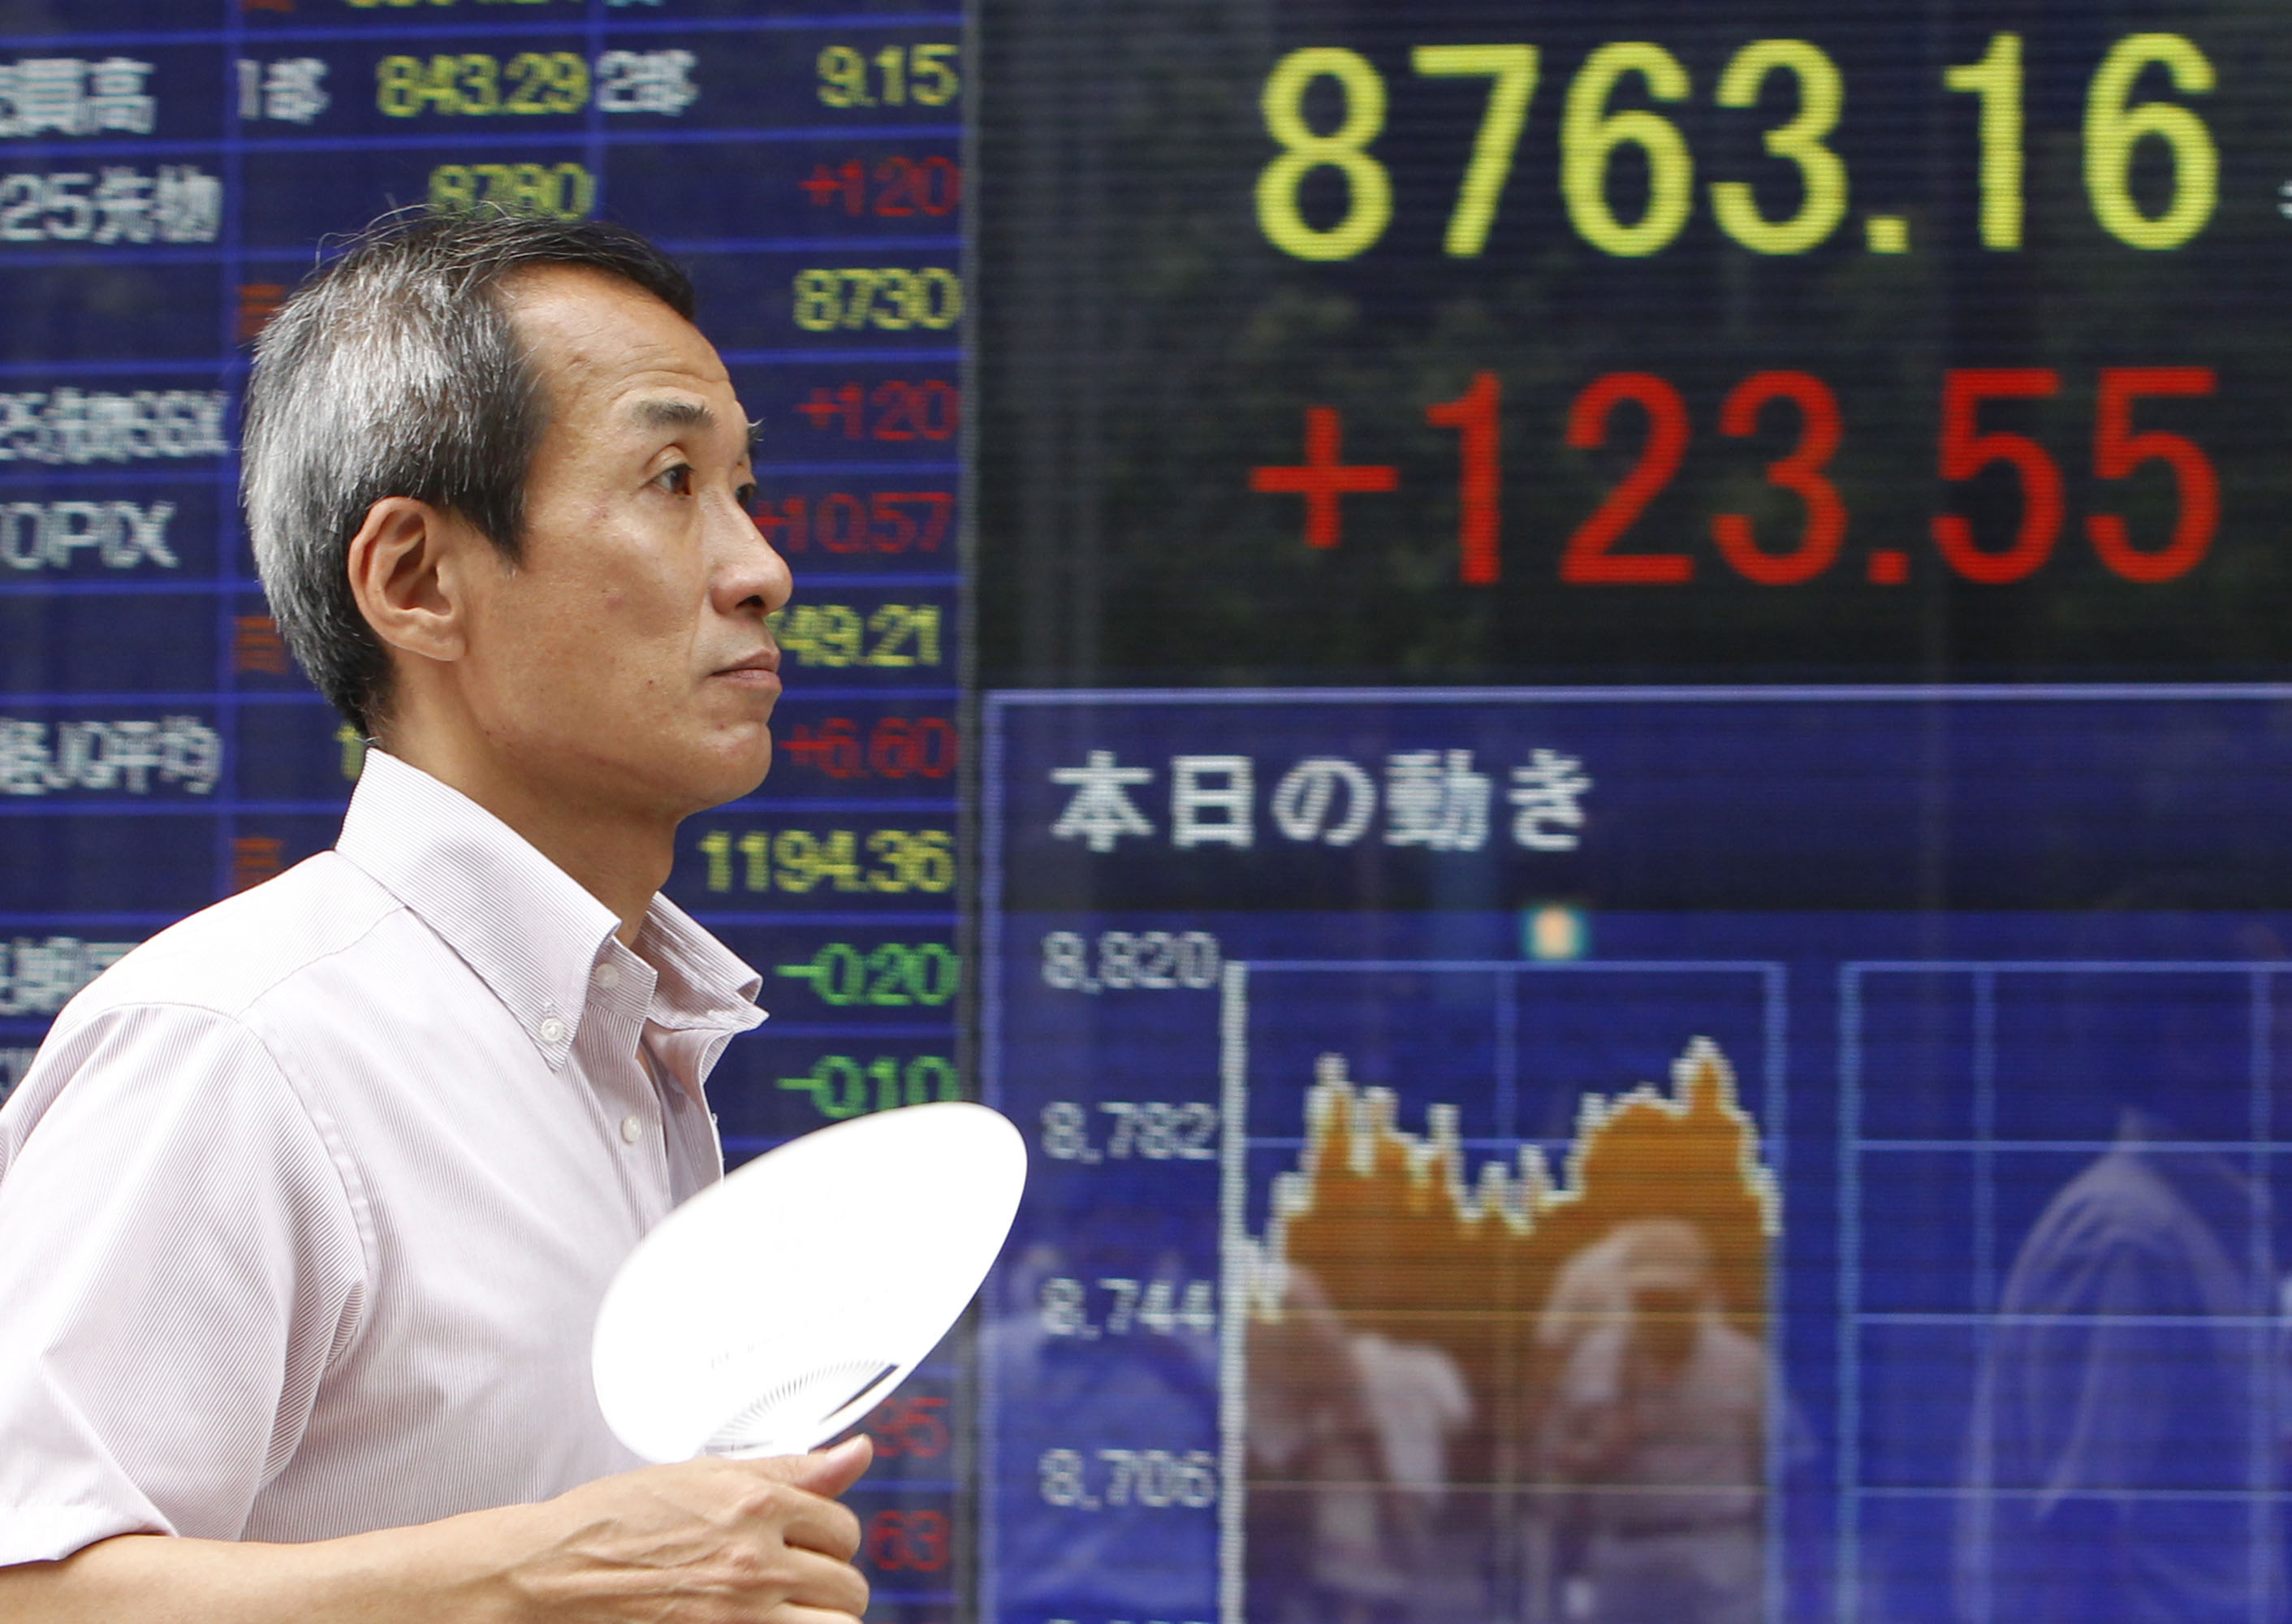 Tense times: A man walks by a stock market index board in Tokyo on Thursday, as analysts debate the yen's future course. | AP PHOTO